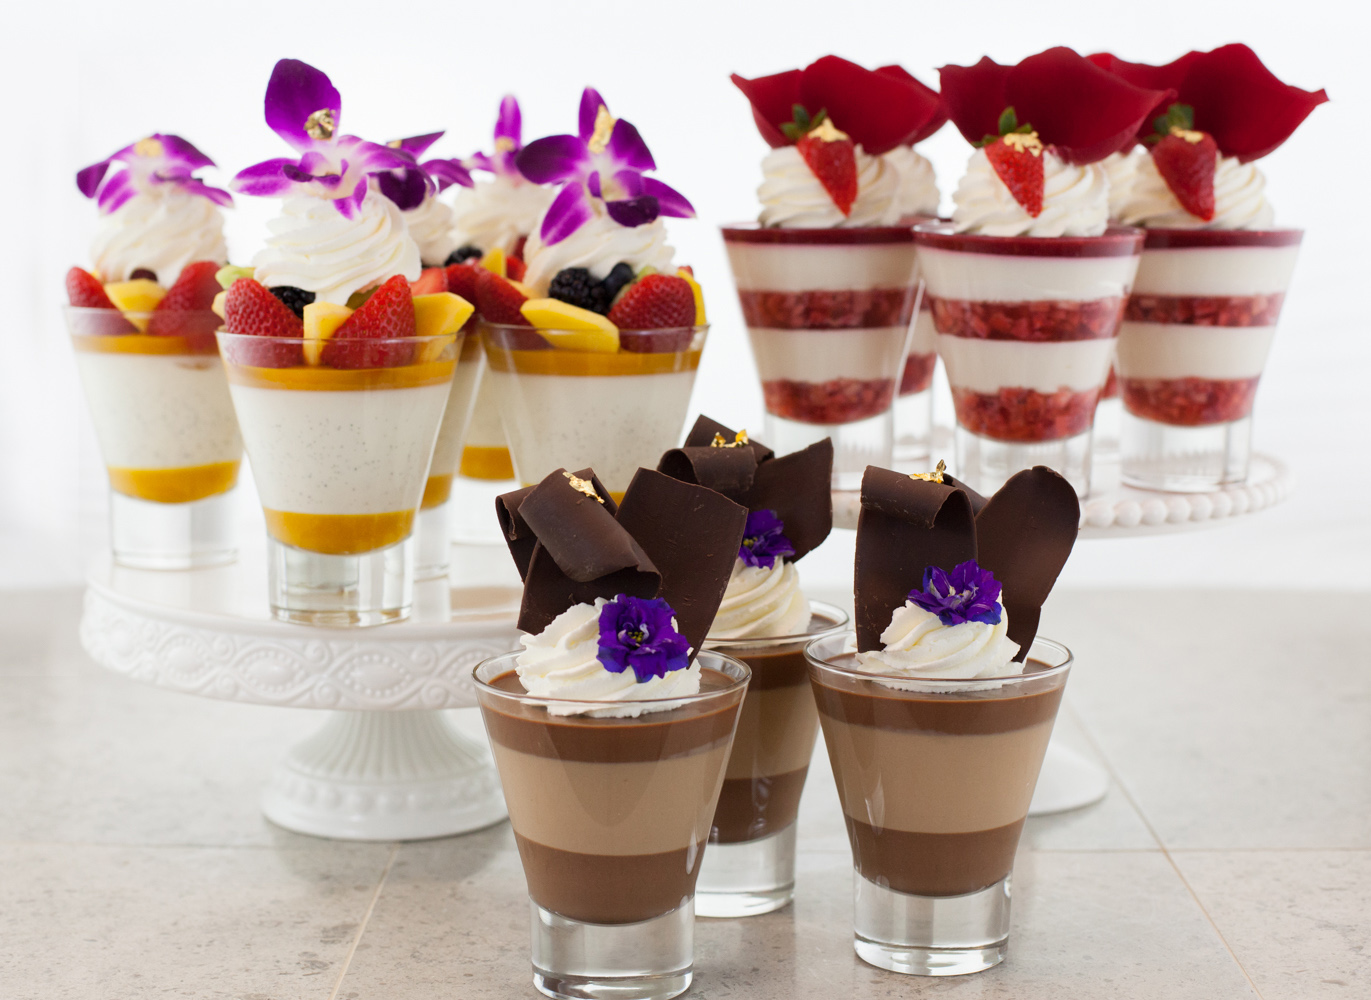 GLASS FILLED DESSERTS